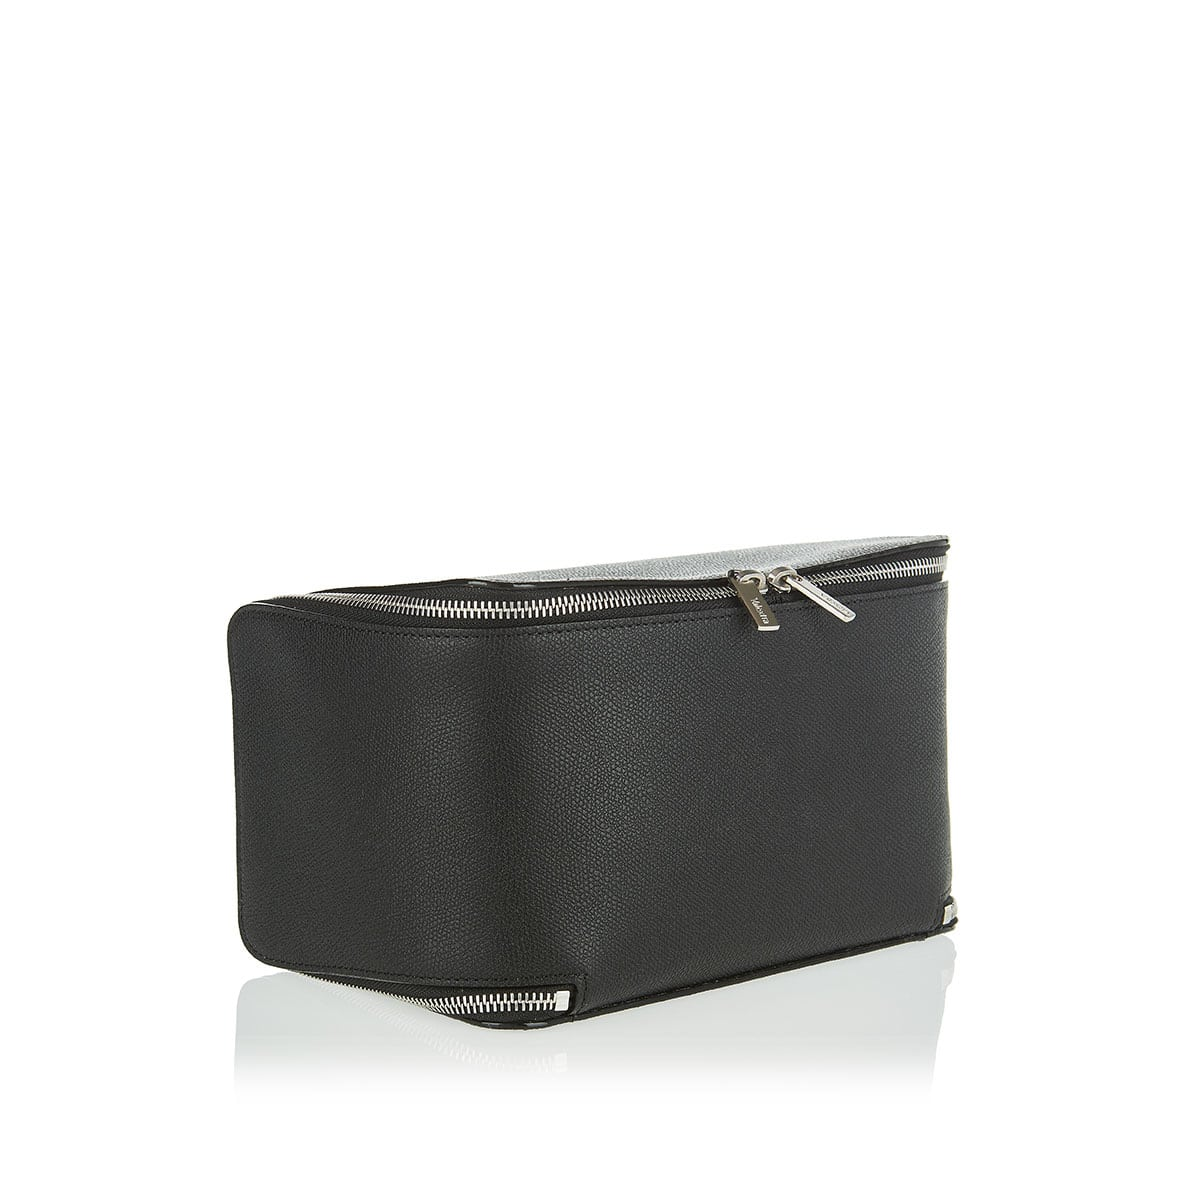 Collapsible leather cosmetic case